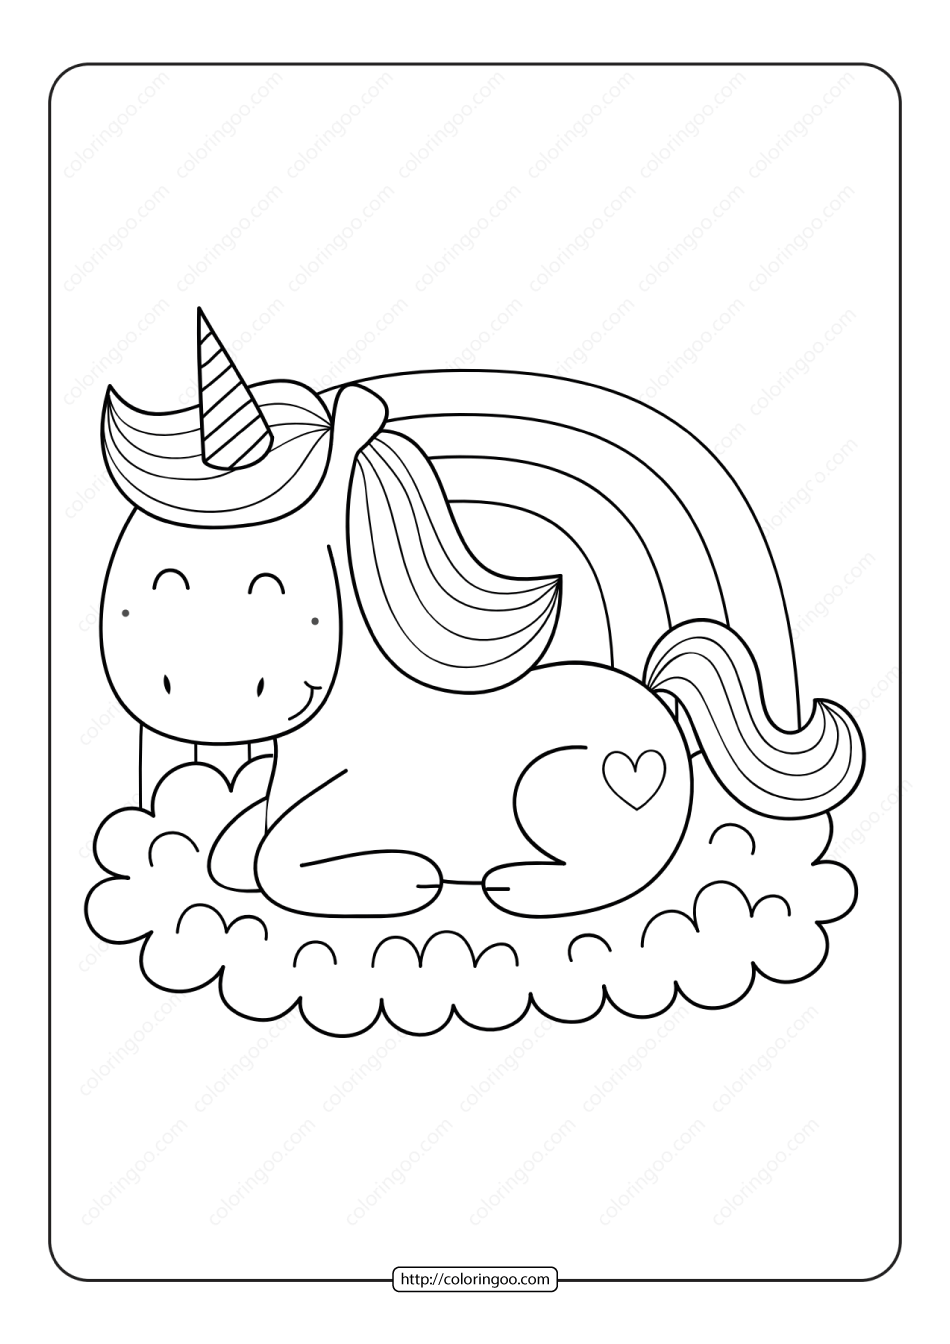 Unicorn Coloring Page 03